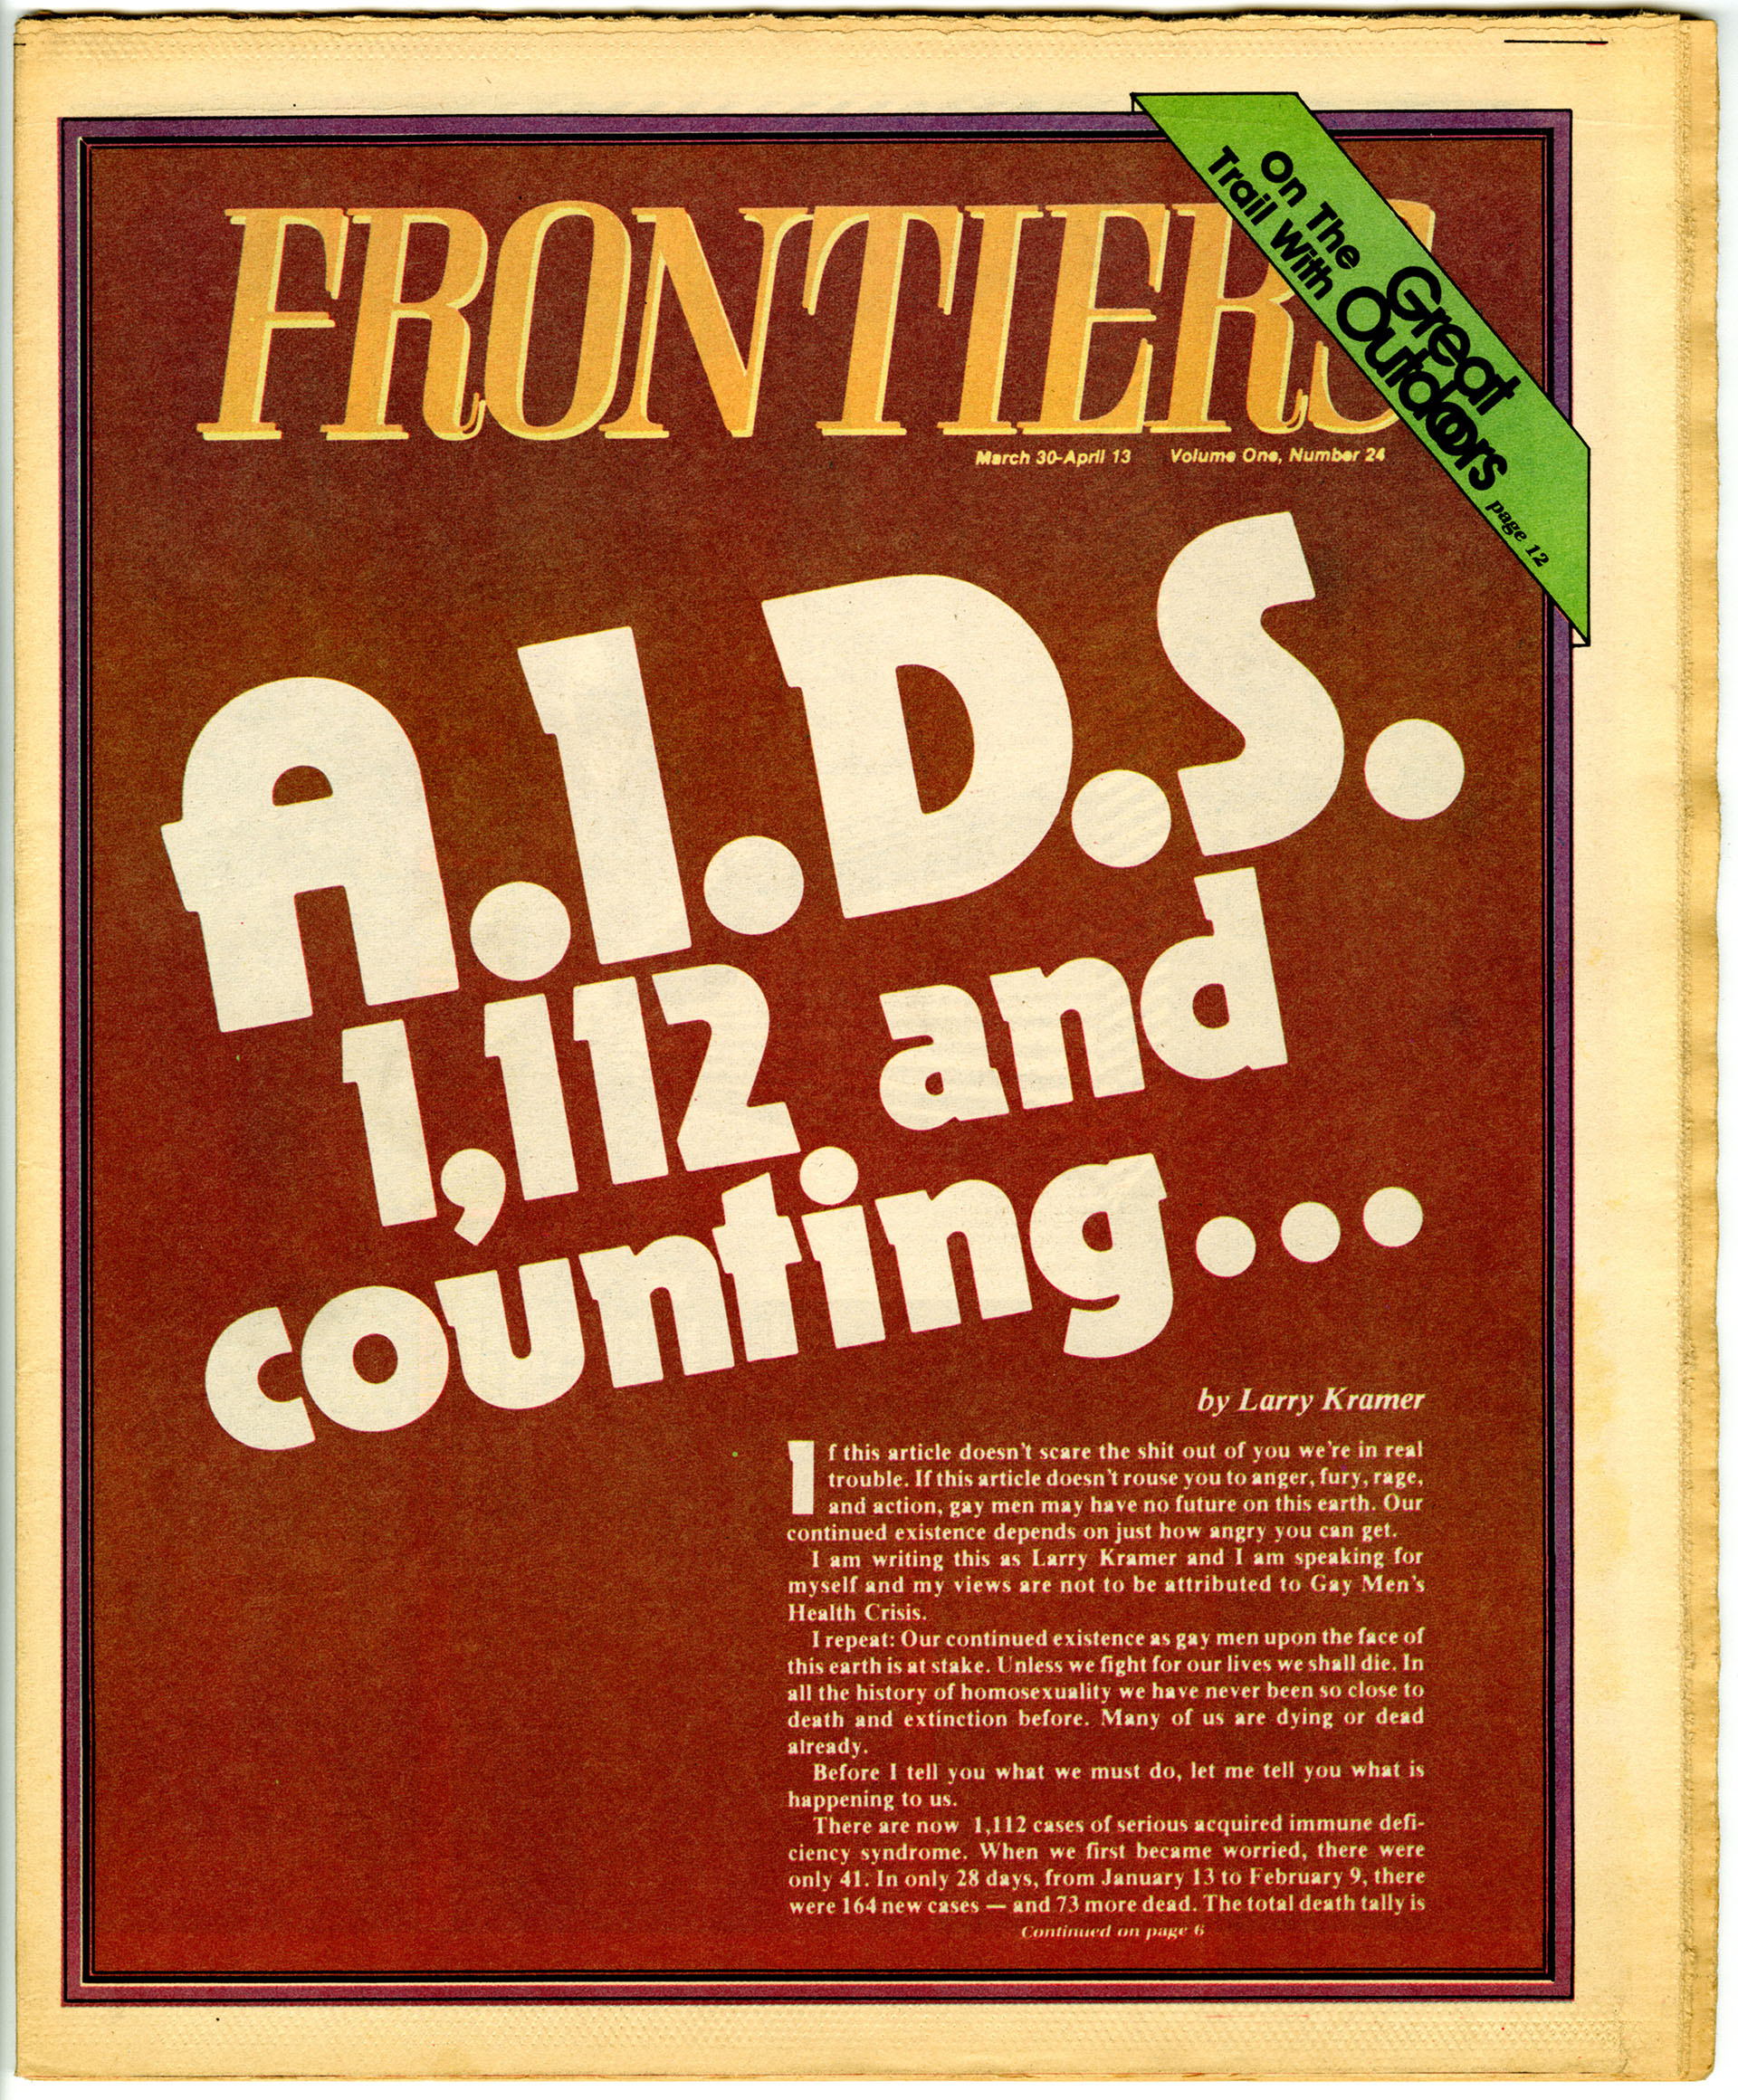 Frontiers, March 30/April 13, 1983